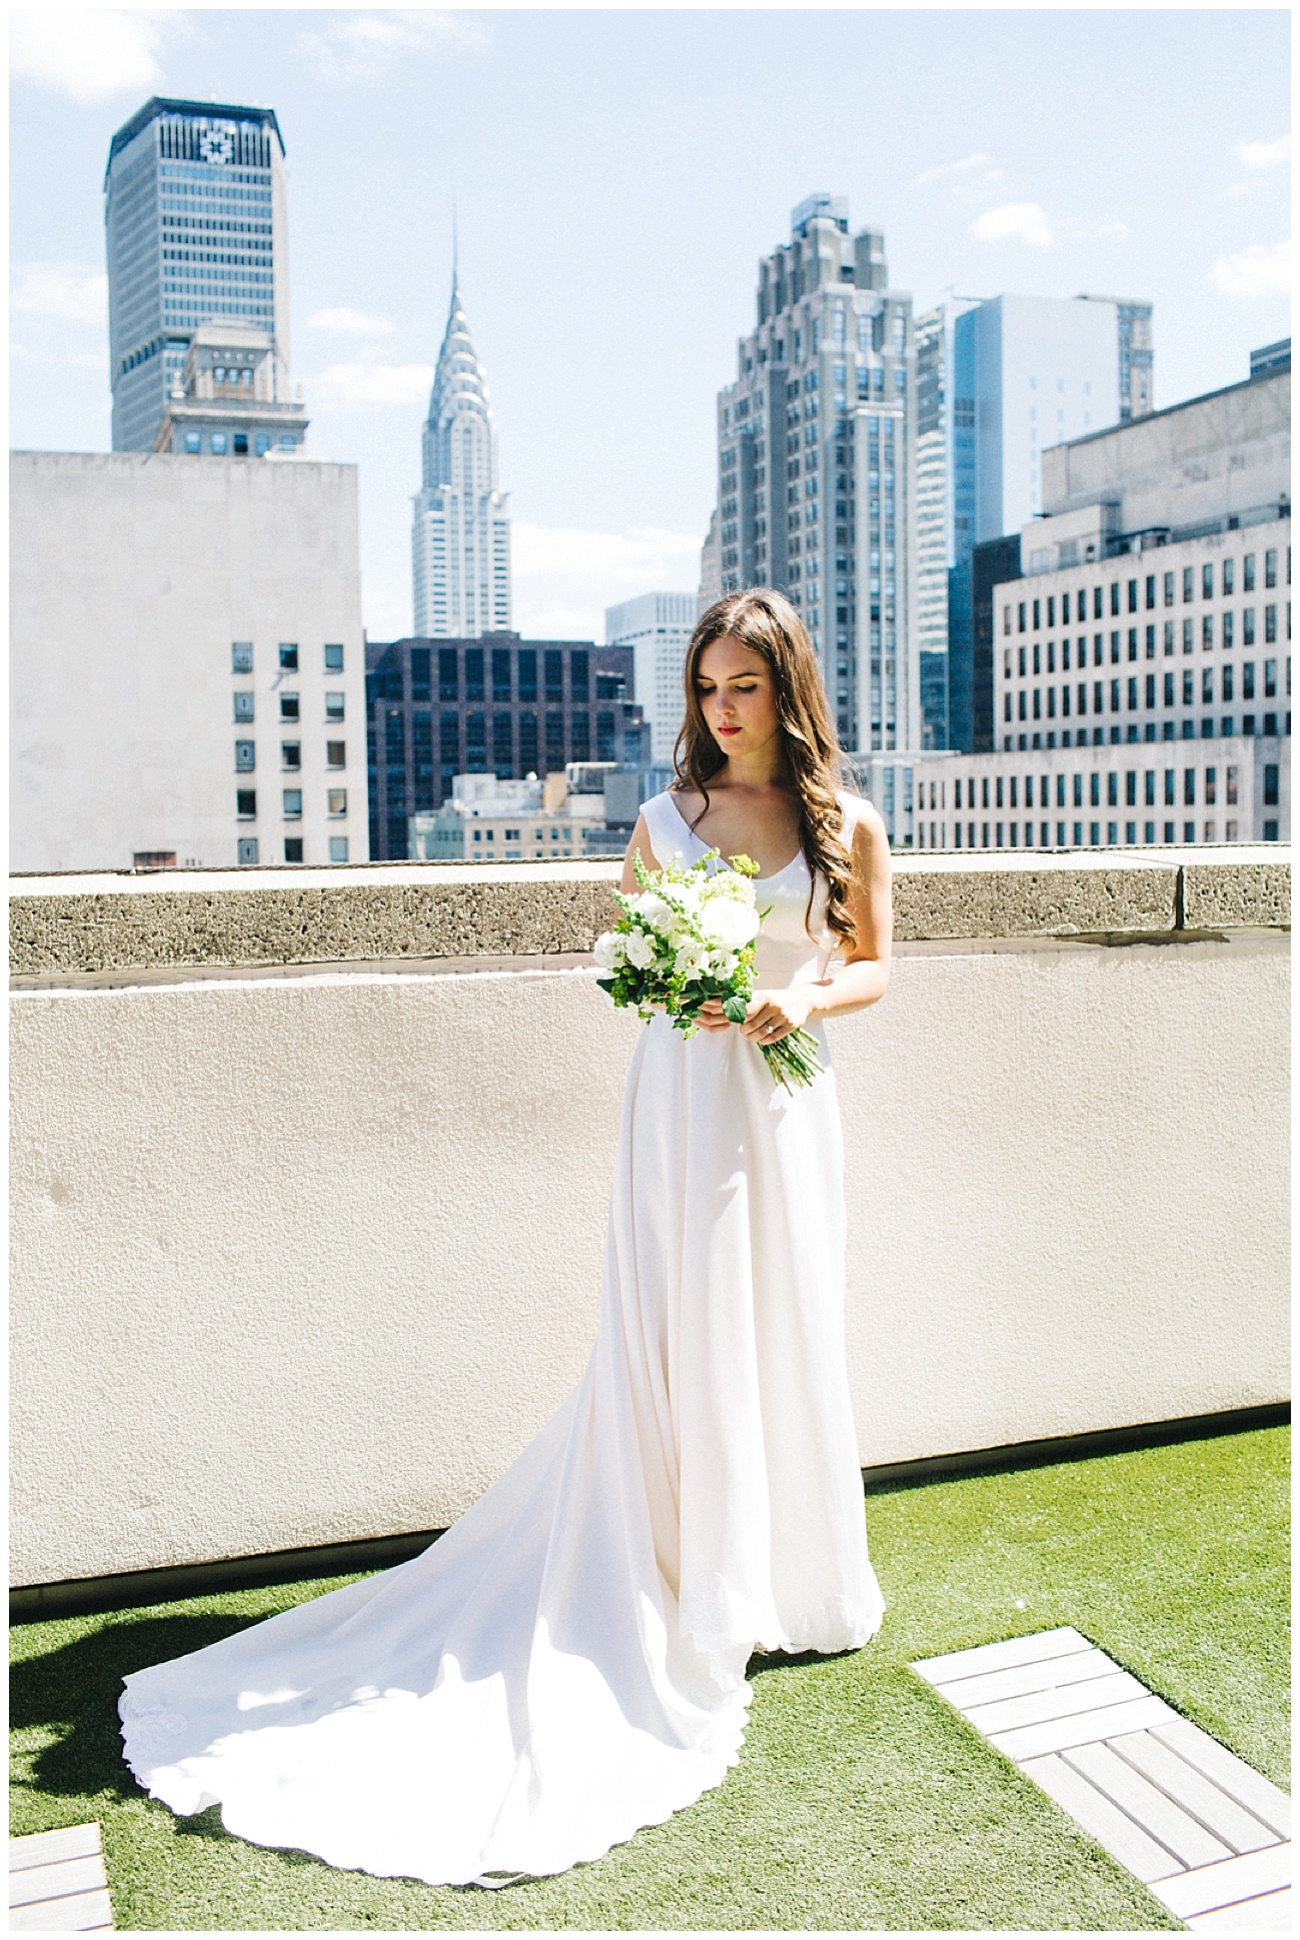 Christine Ted NYC Elopement Wedding_0011